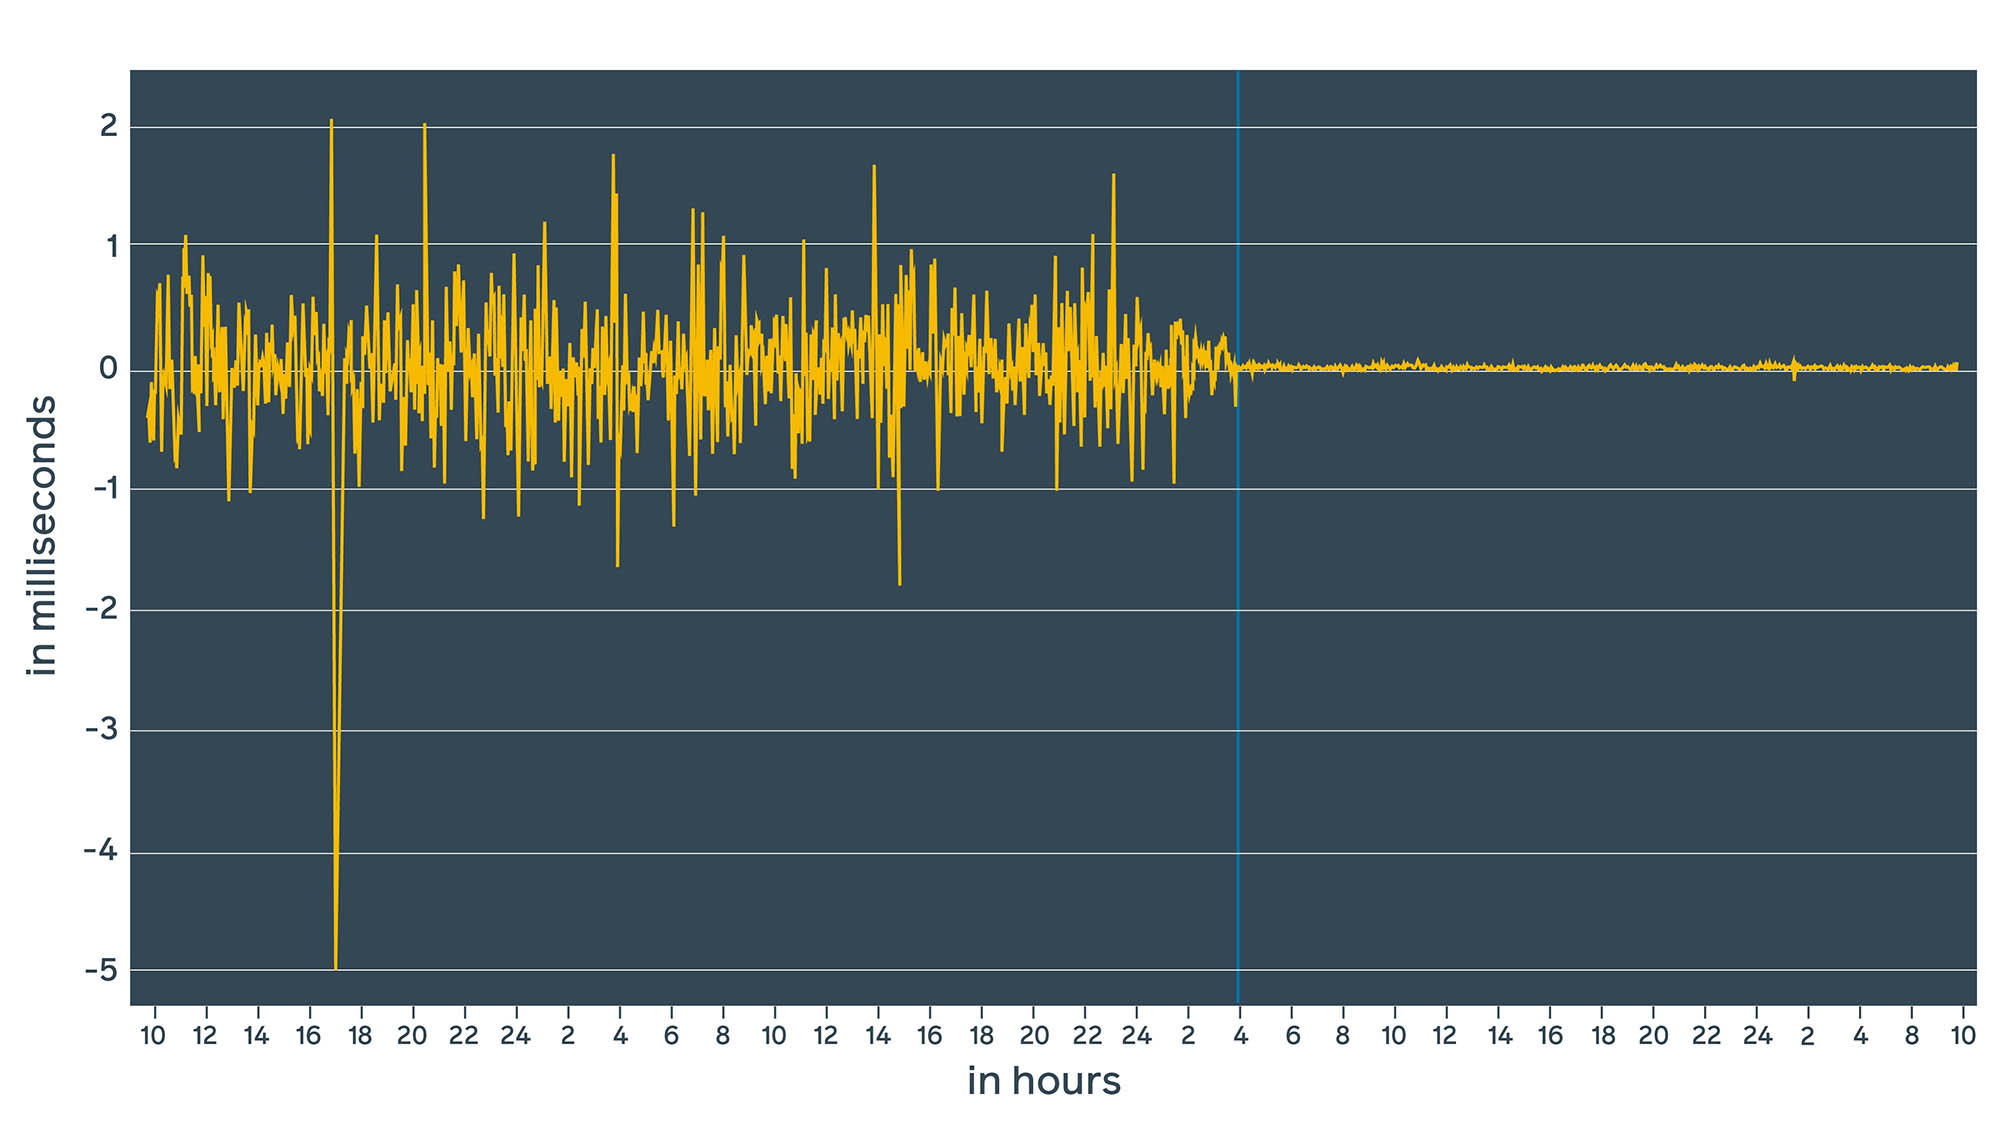 The vertical blue line represents the moment when ntpd was replaced with chrony. With ntpd, we were in the range of +/-1.5 ms. With chrony, we are in the range of microseconds.